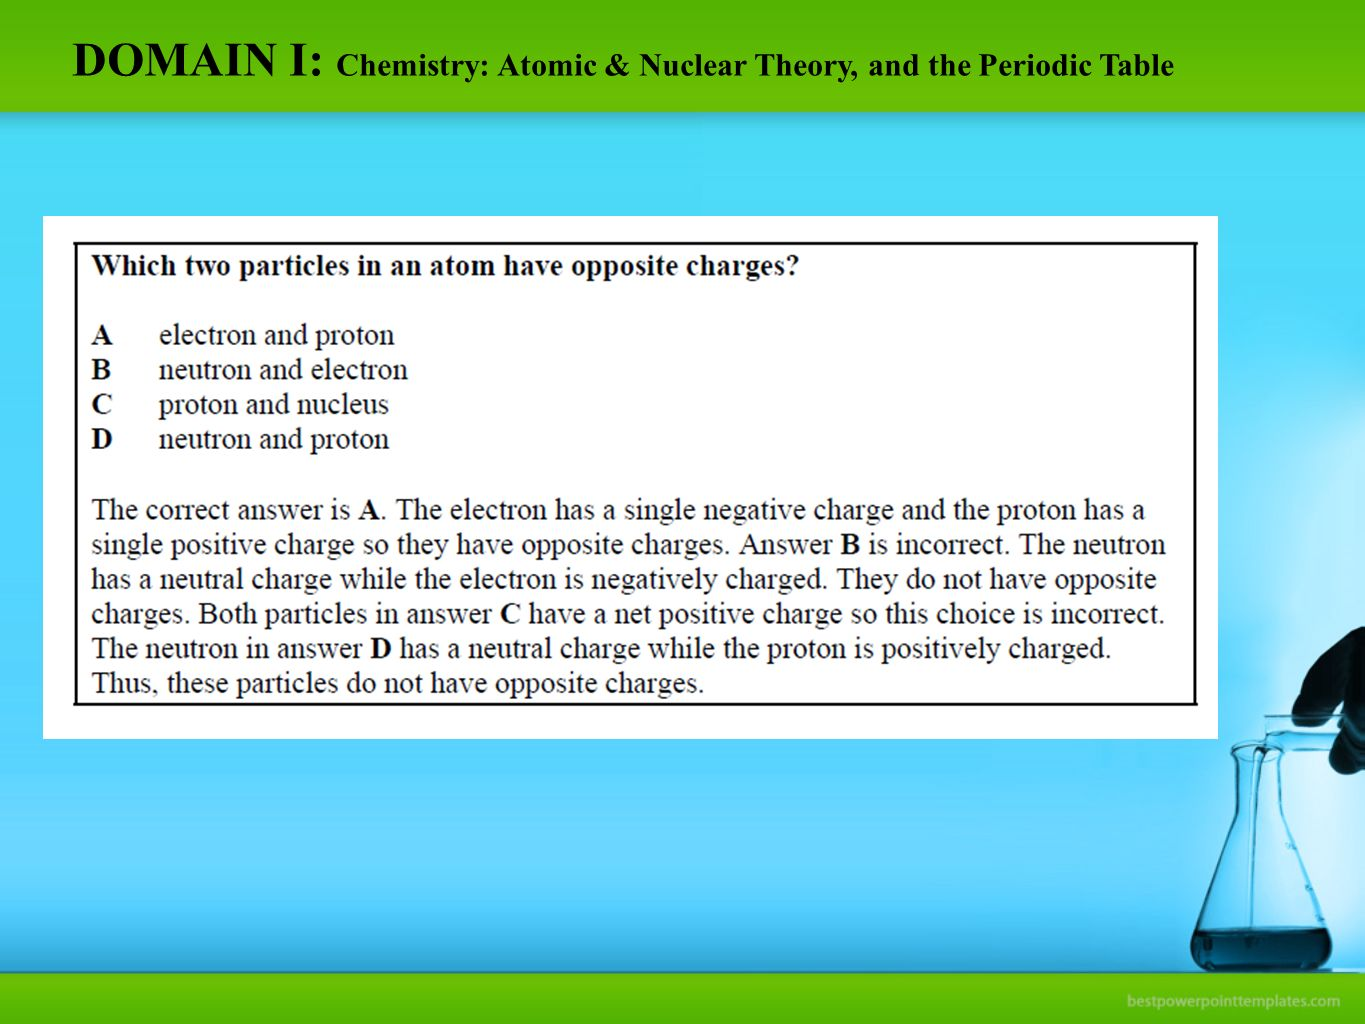 Periodic table solid liquid gas at room temperature images periodic table solids liquids and gases gallery periodic table physical science eoct etowah high school ppt gamestrikefo Choice Image